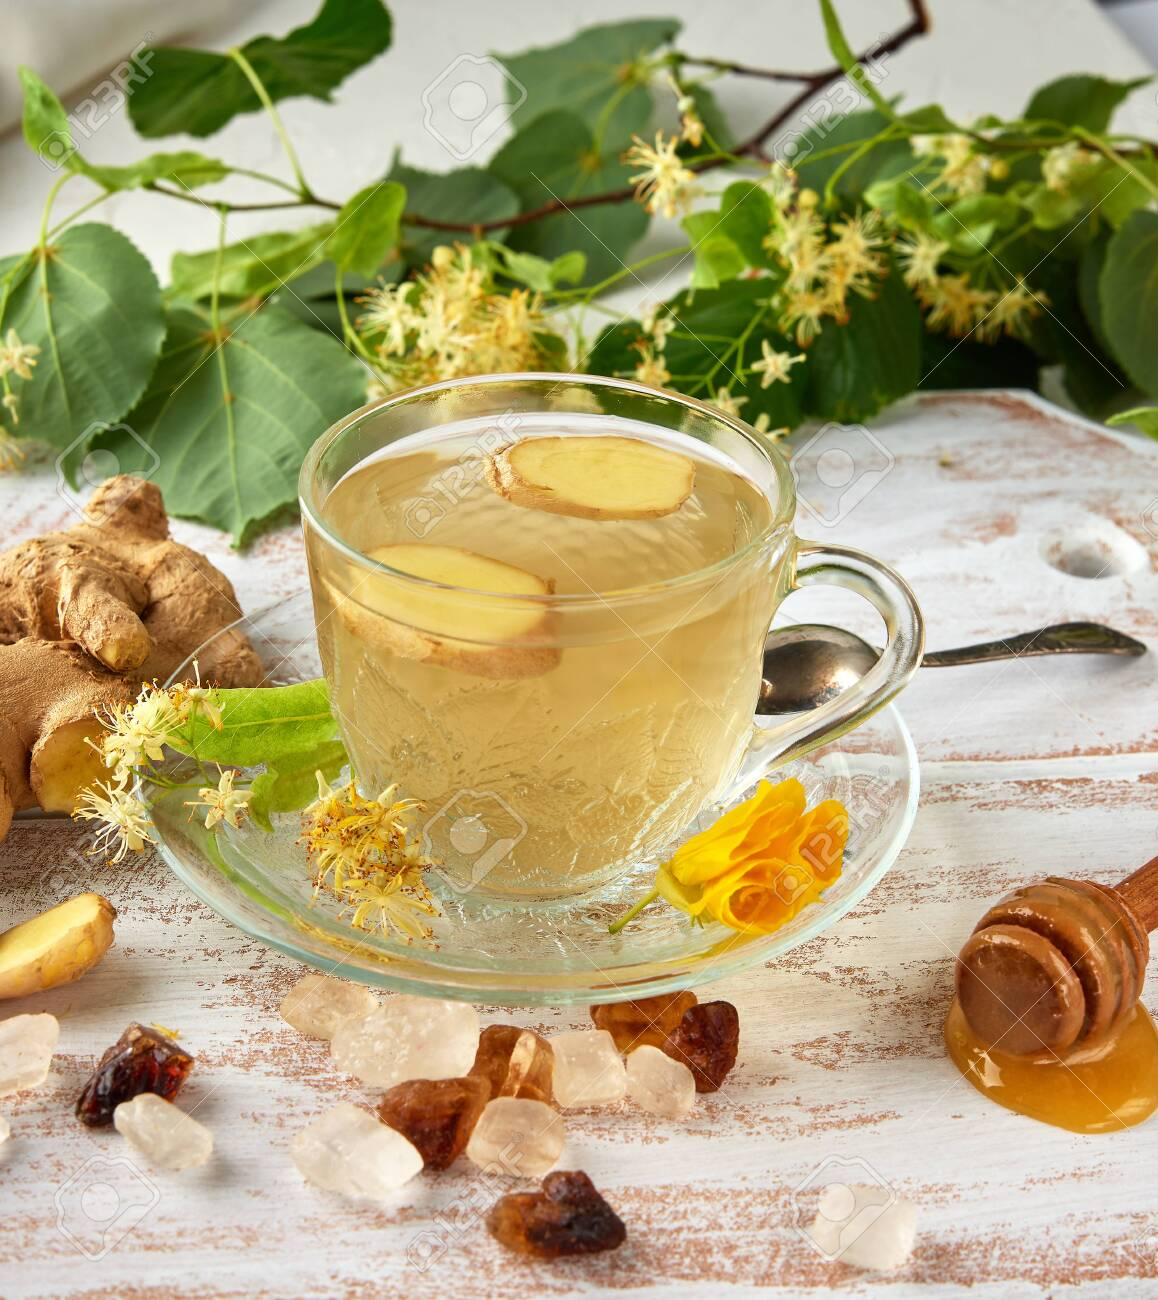 transparent cup with tea from ginger and linden on a white wooden board, top view - 128721362